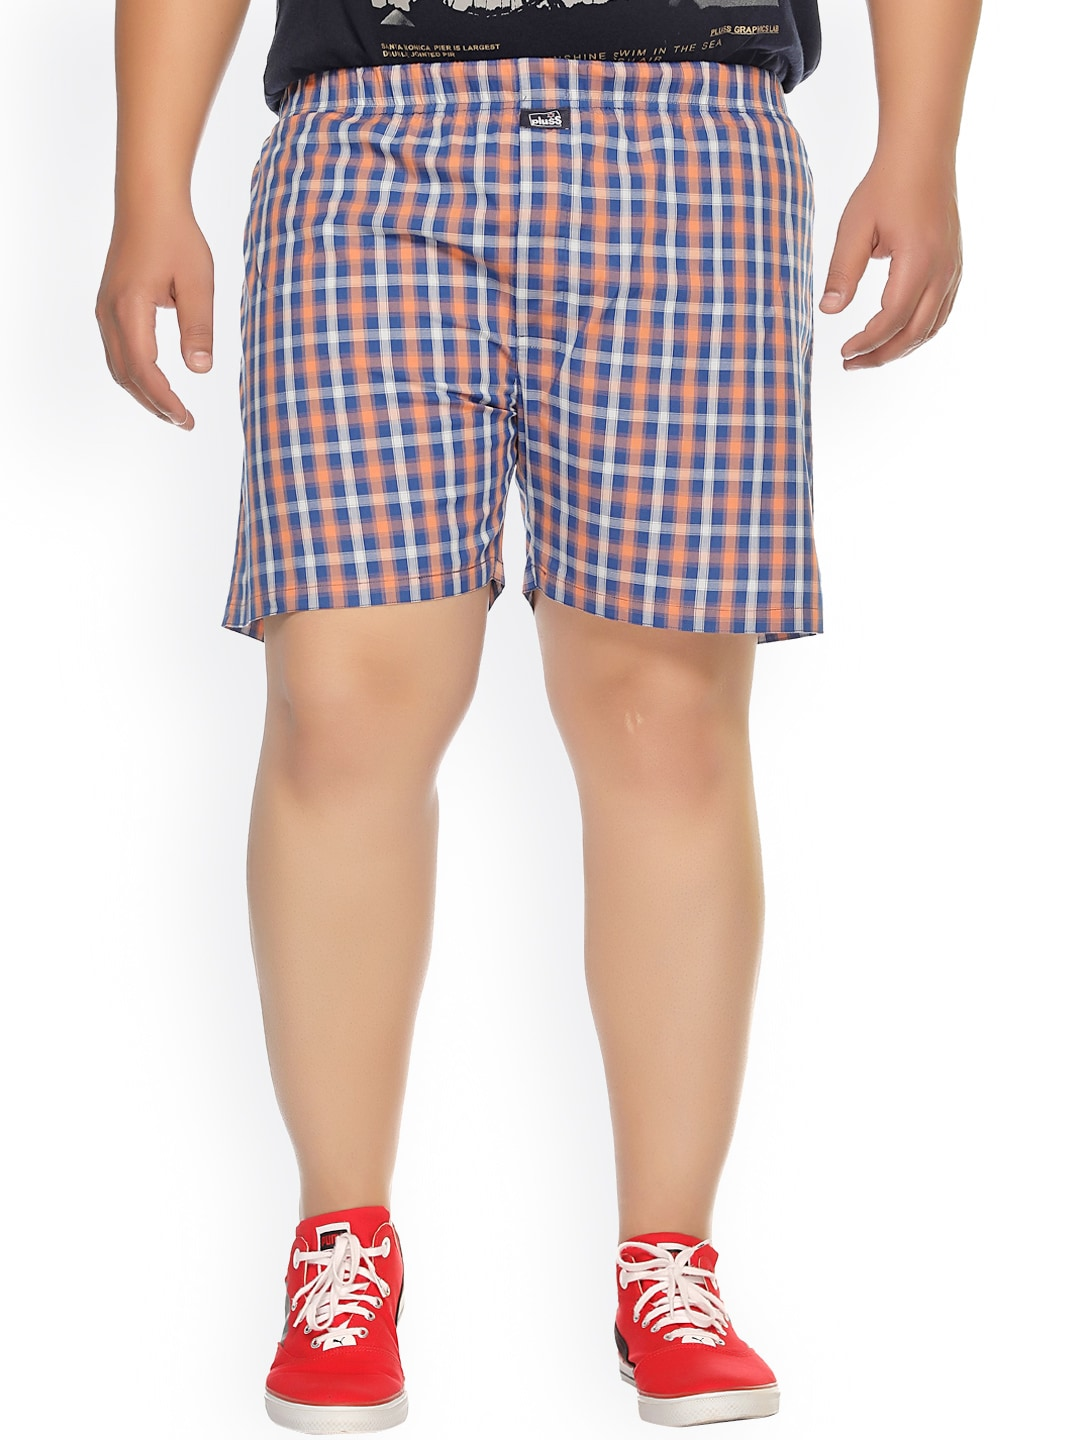 plusS Blue Checked Boxers MBX208 image